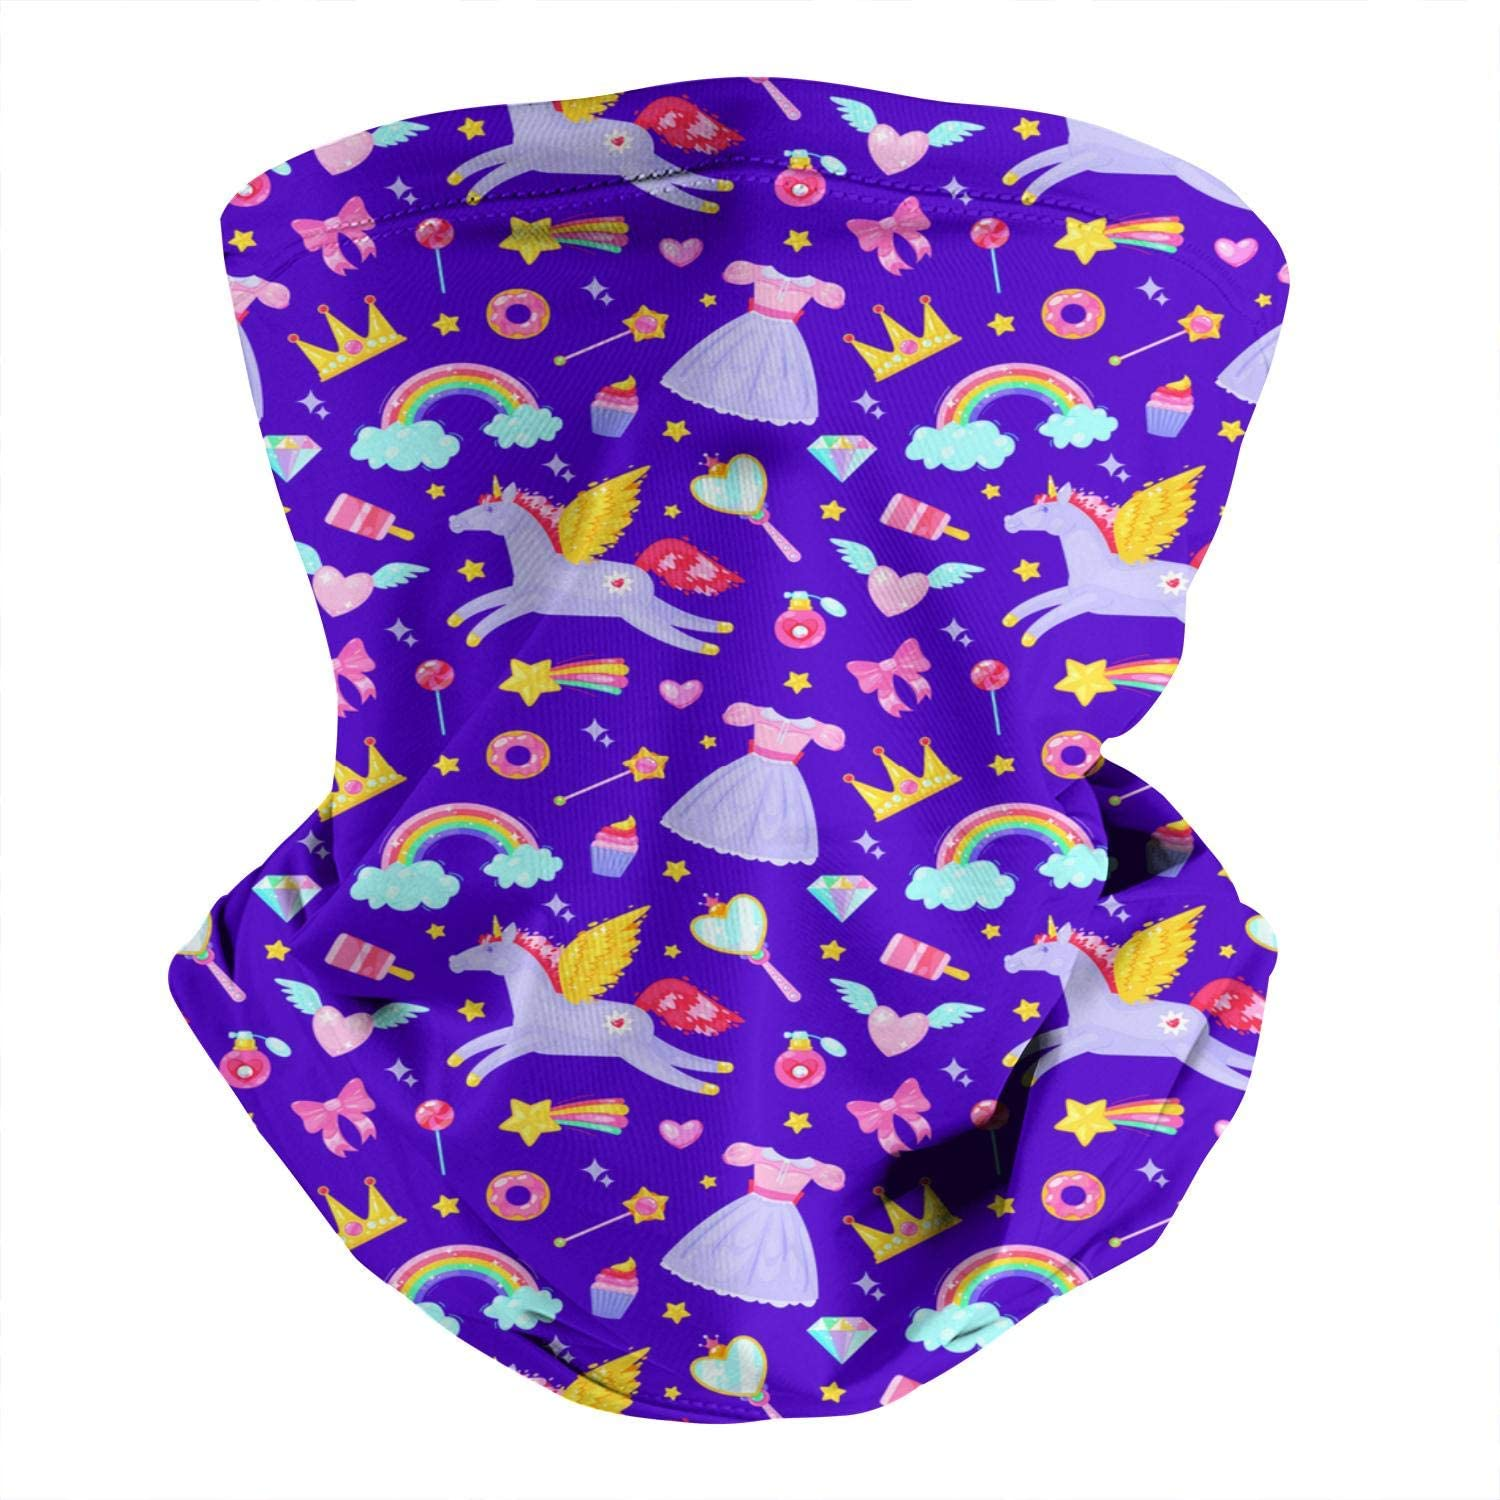 LHSCVUFASC Catnip Rainbow Dust Neck Face Cover Bandanas Scarf Cover Gaiter Fishing Protection Headband